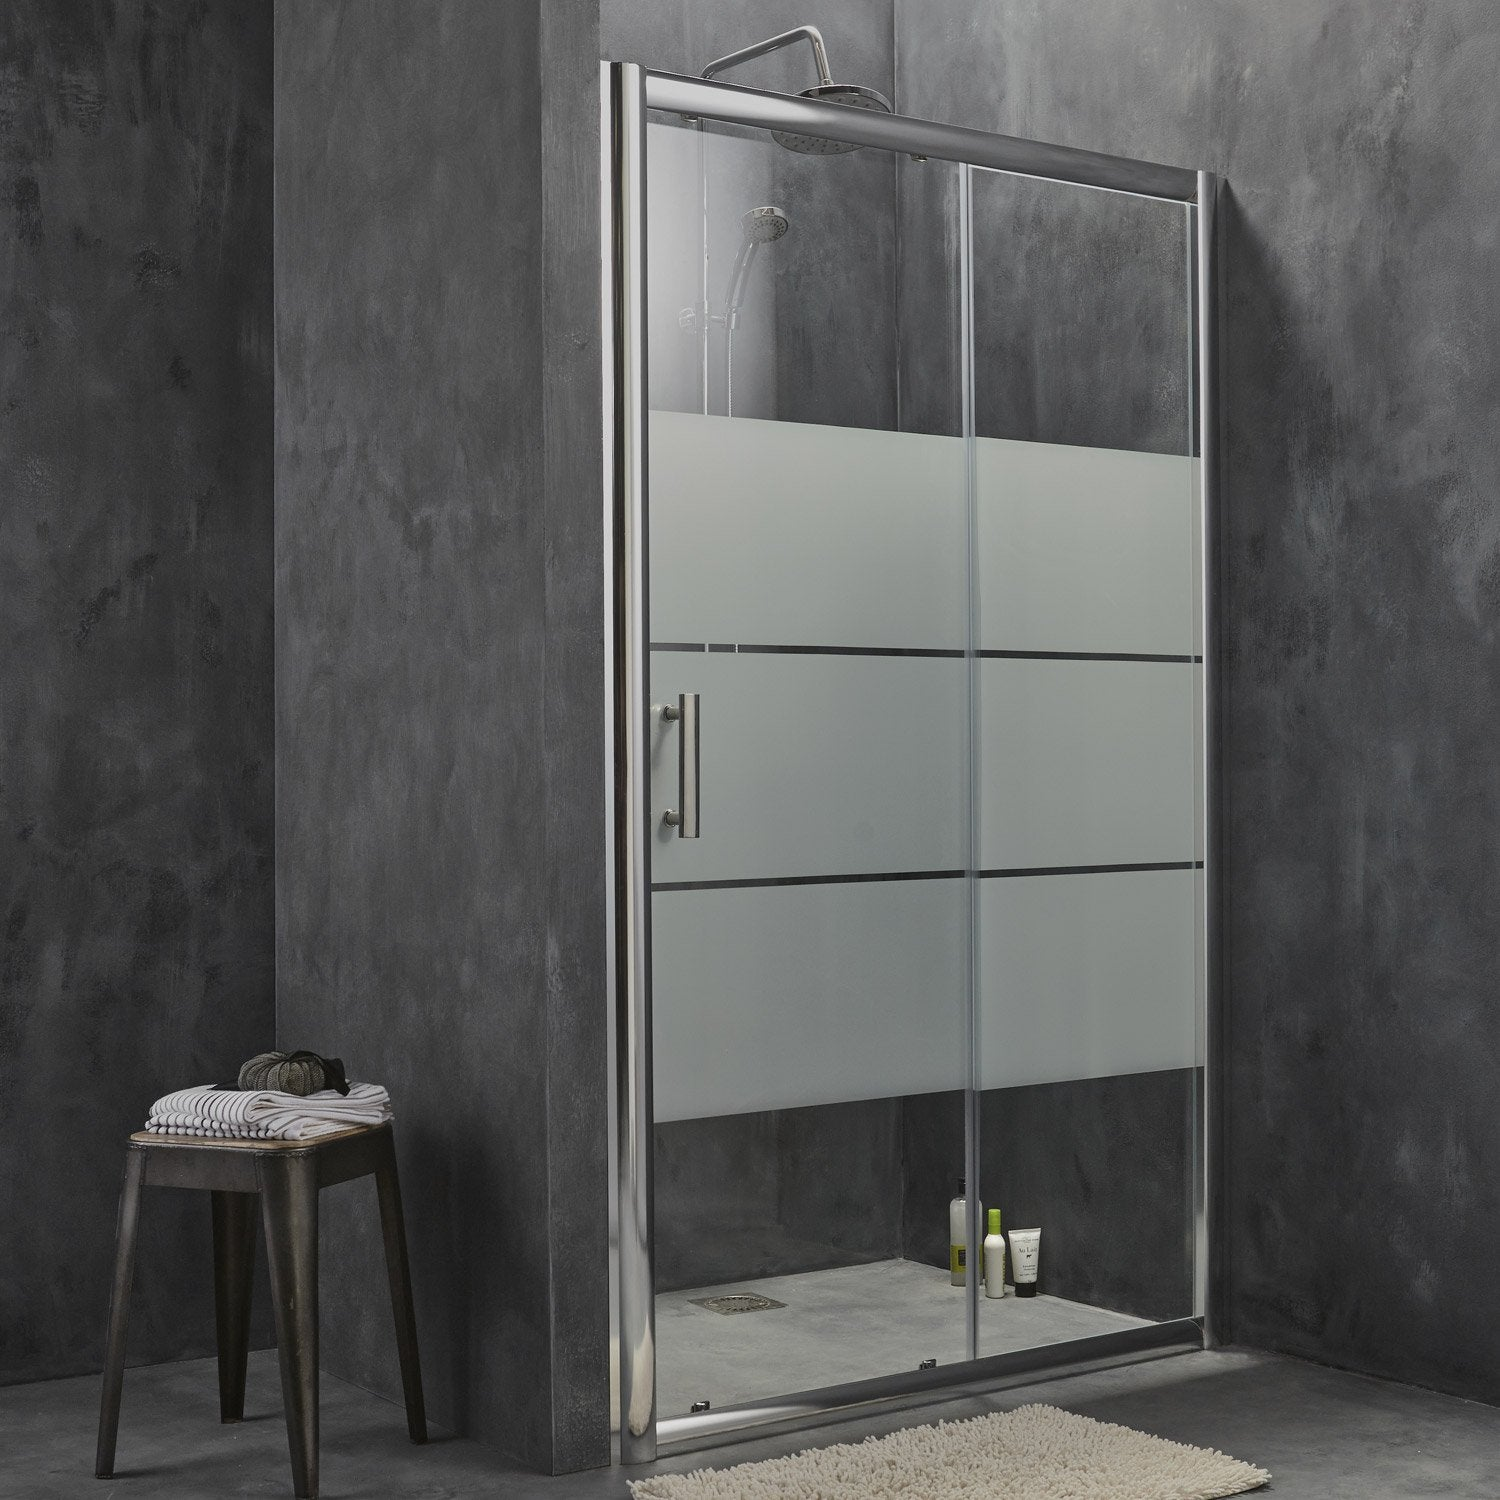 porte de douche coulissante 116 5 120 cm profil chrom optima2 leroy merlin. Black Bedroom Furniture Sets. Home Design Ideas